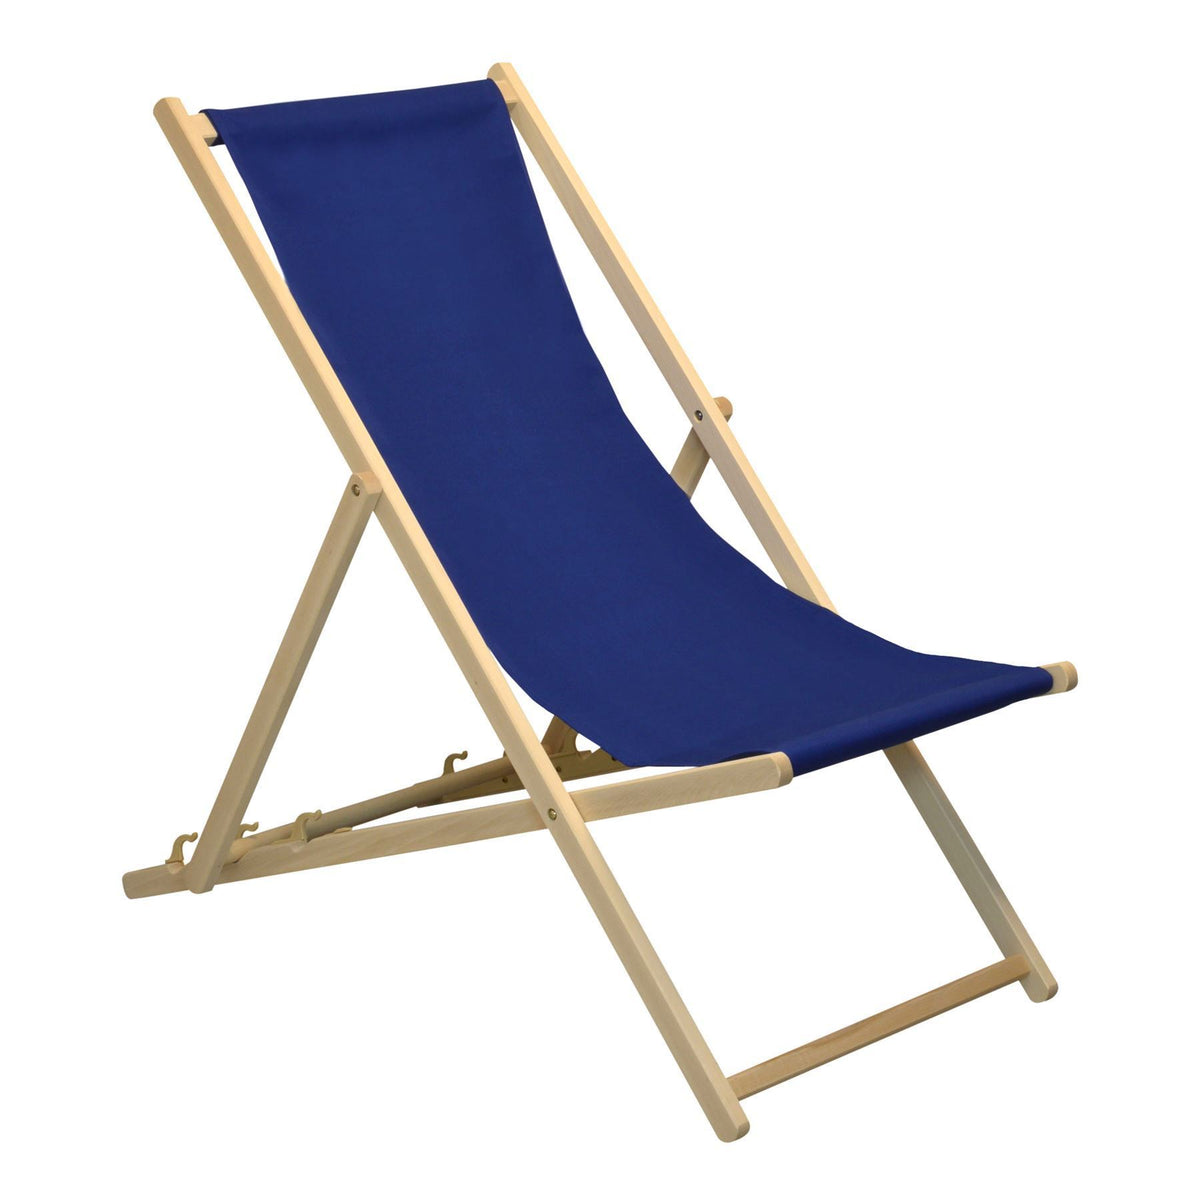 Ideal for the garden the Harbour Housewares Beach Deck Chair - Navy Blue